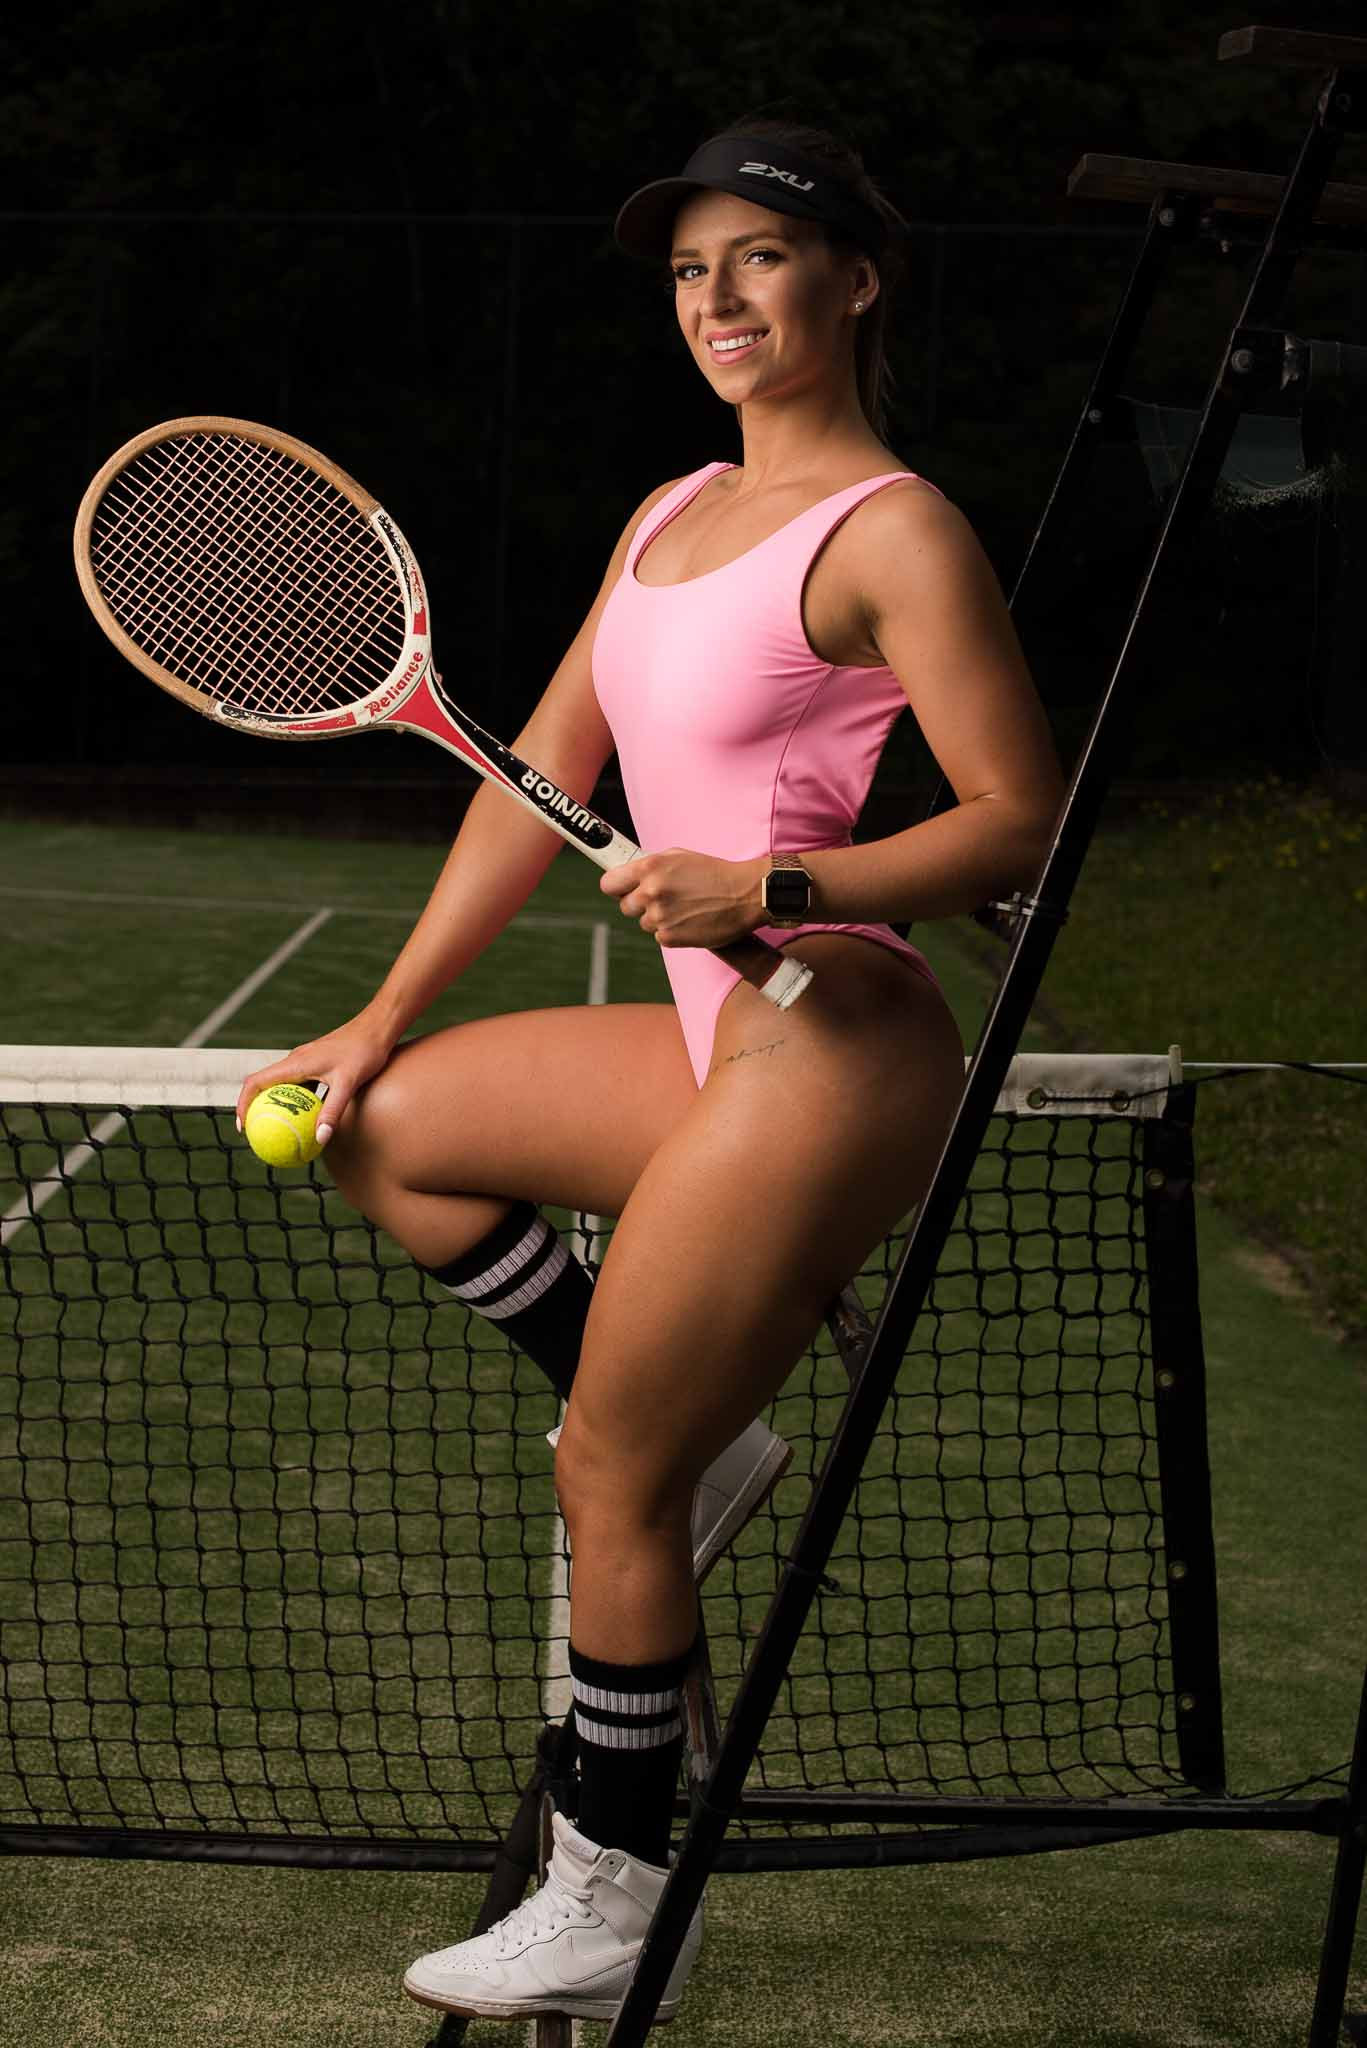 Maya Sitting on tennis nets holding tennis racket whilst wearing pink one piece swimsuit